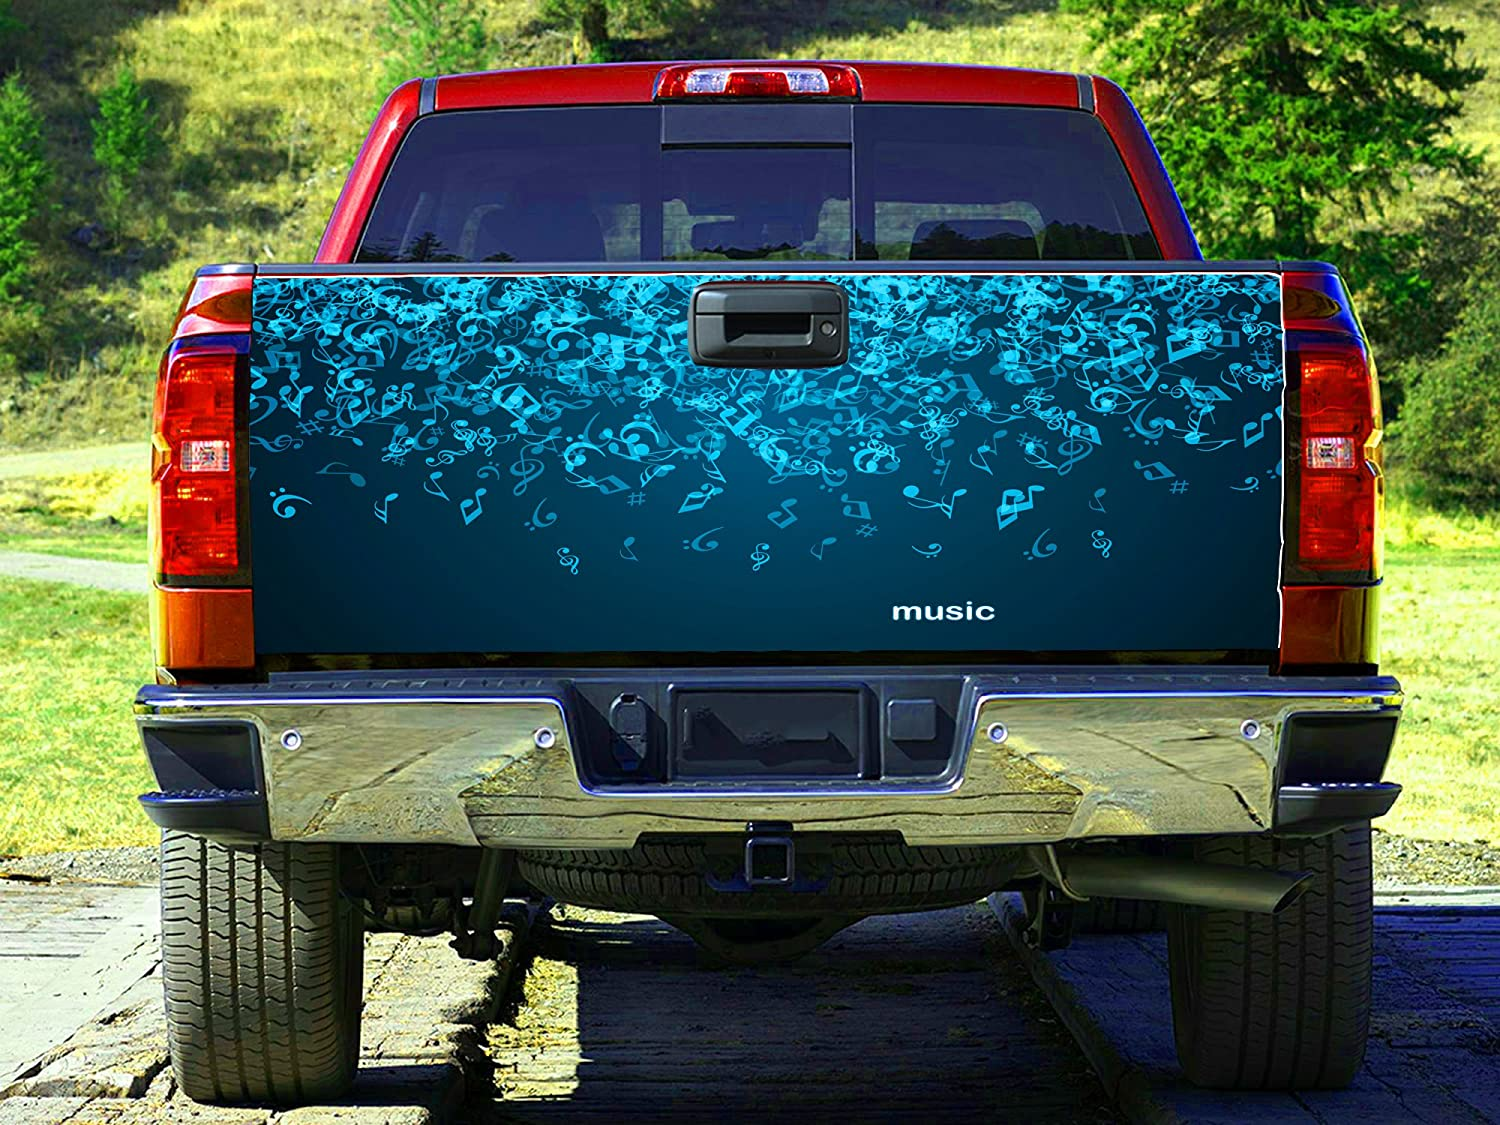 Amazon.com: Music Sheet music Notes Tailgate Wrap, Truck Decal ...